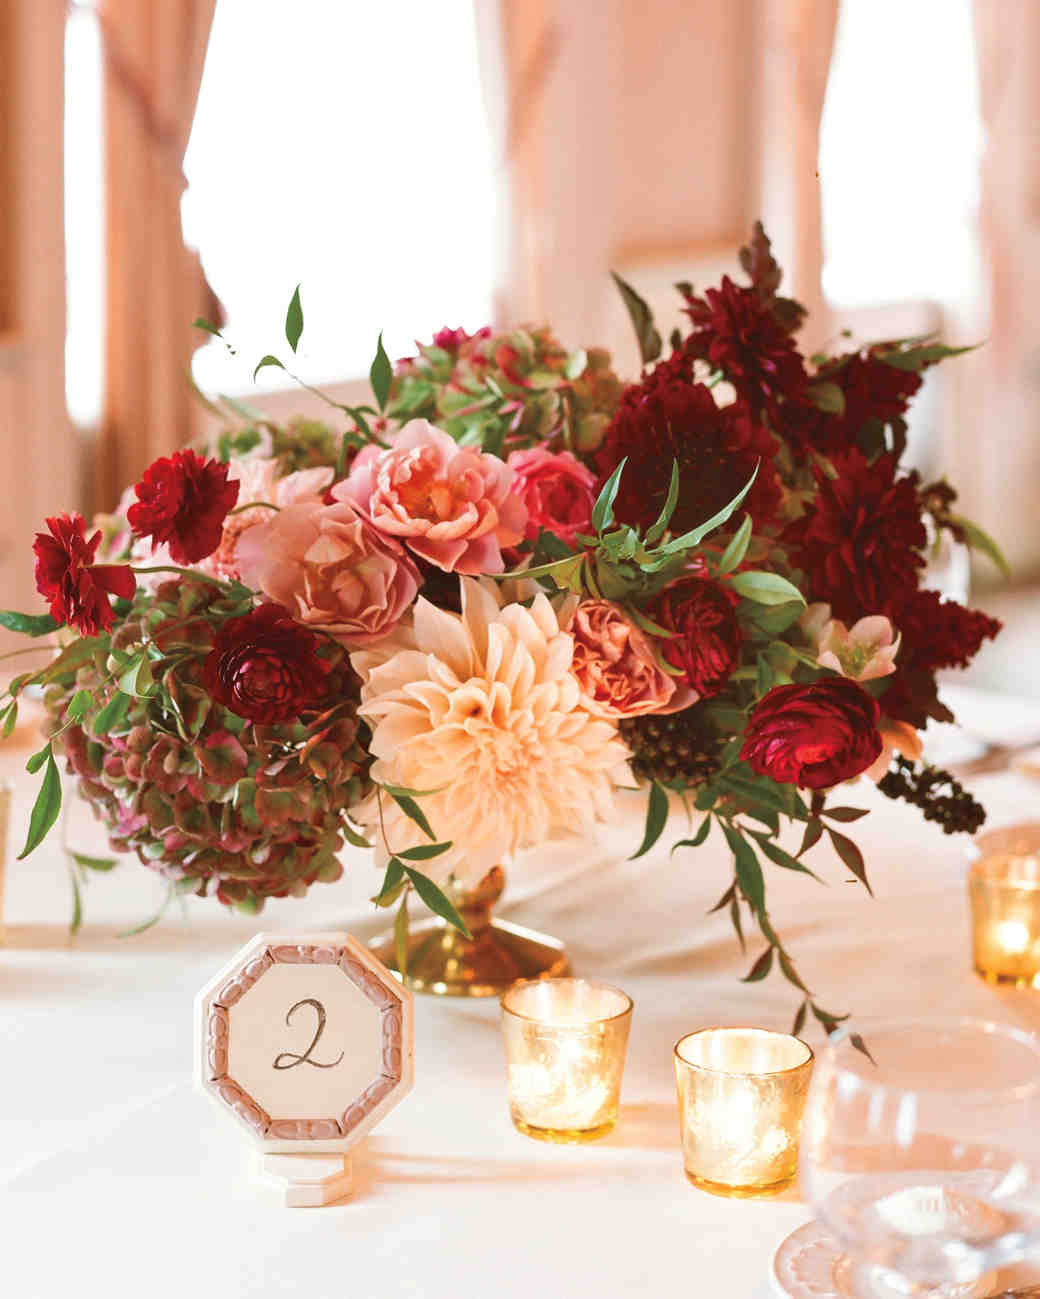 Wedding Centerpieces: 75 Great Wedding Centerpieces